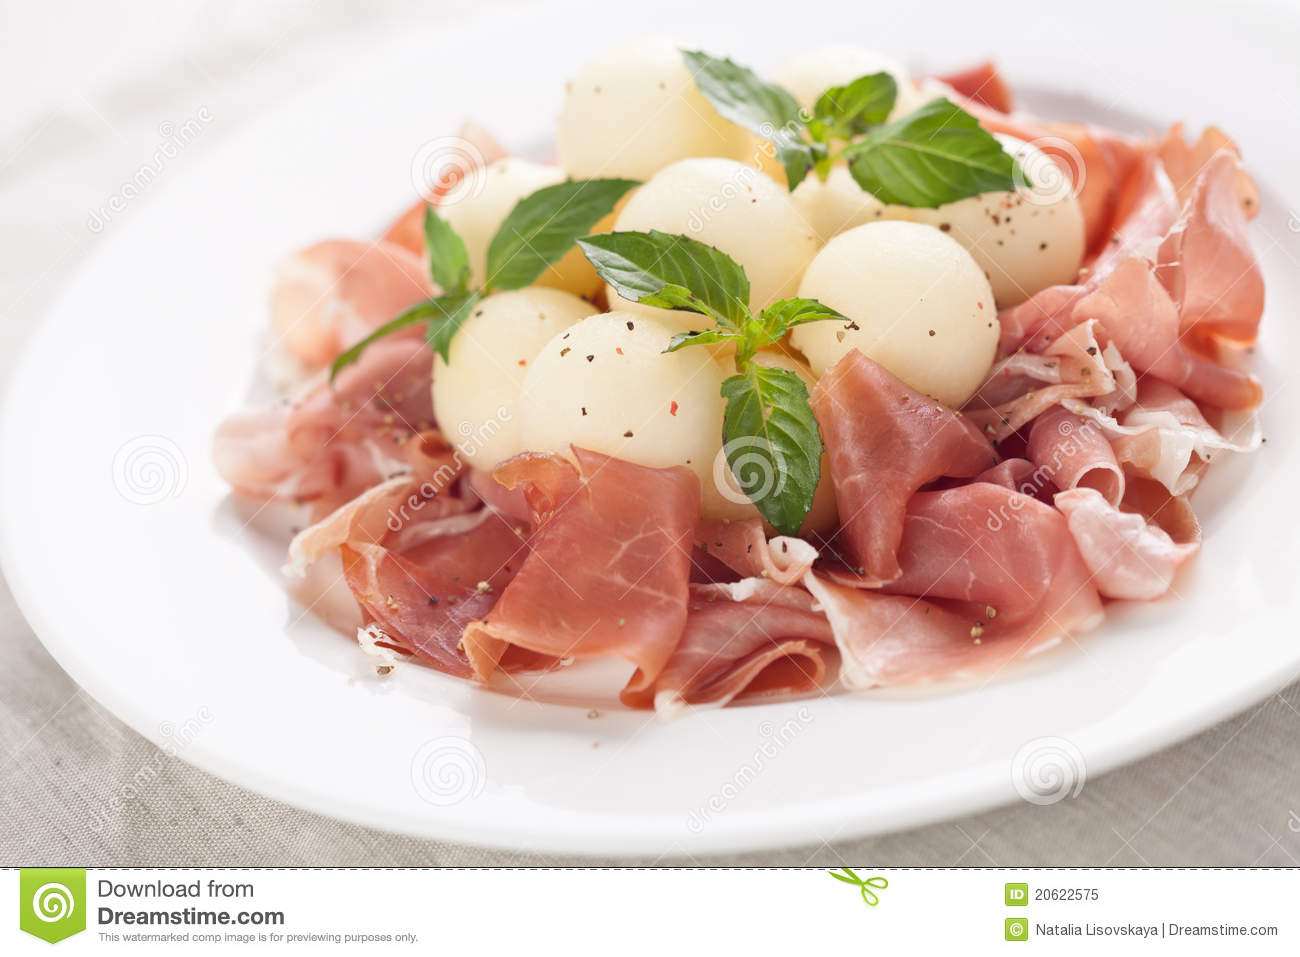 Melon With Parma Ham Royalty Free Stock Photo - Image: 20622575